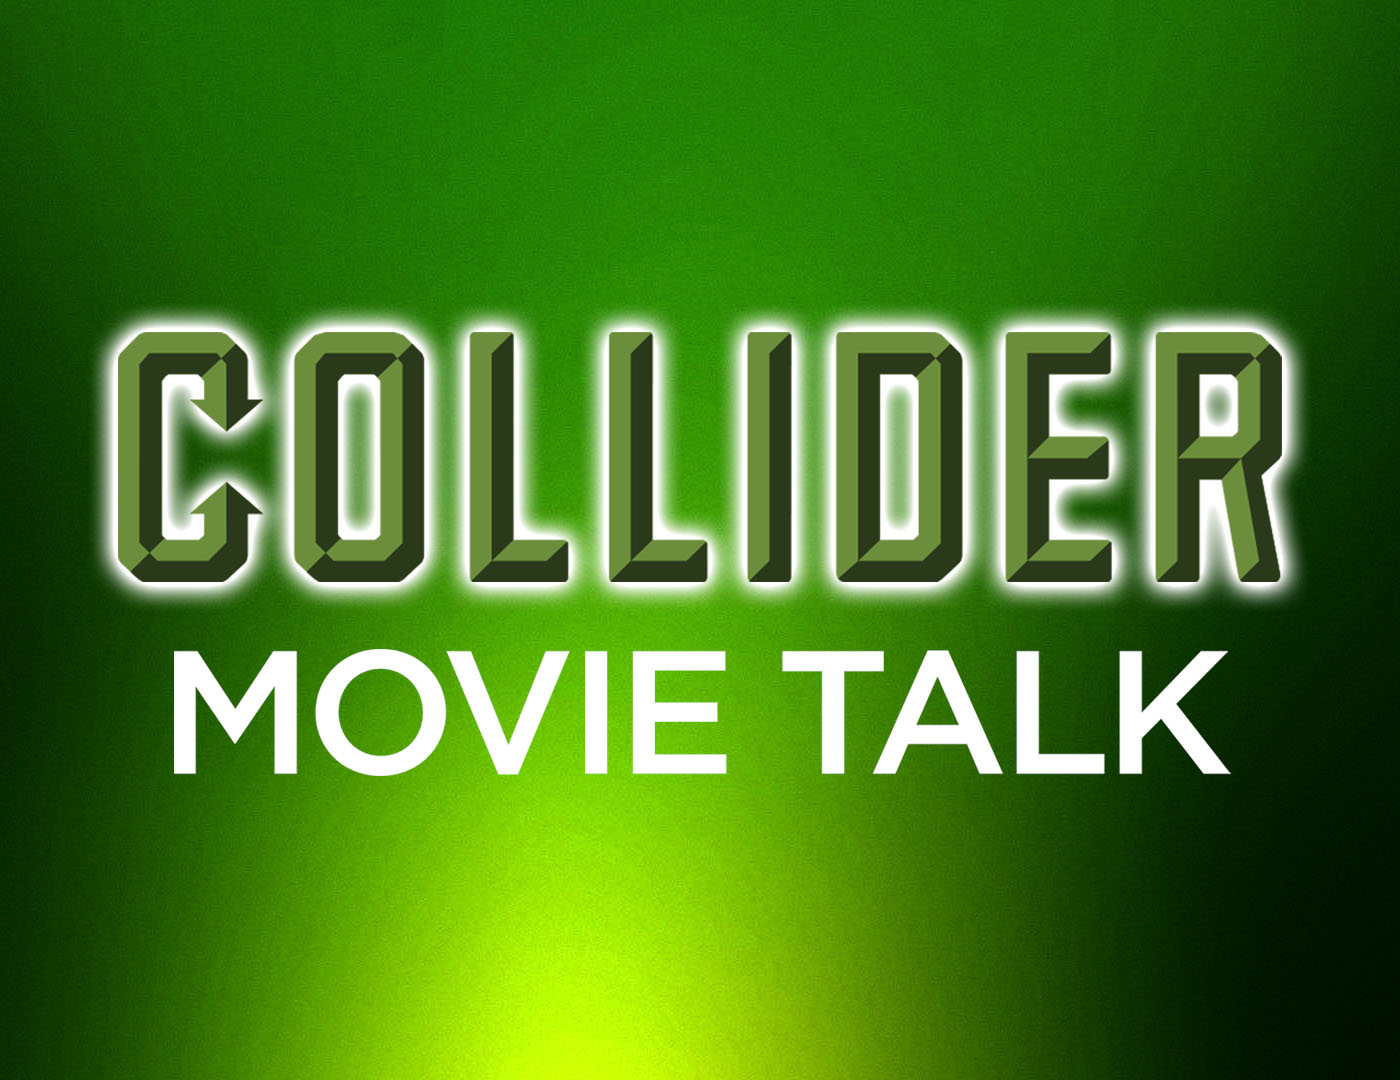 Collider Movie Talk - Awards Change Rules To Fit Star Wars: The Force Awakens